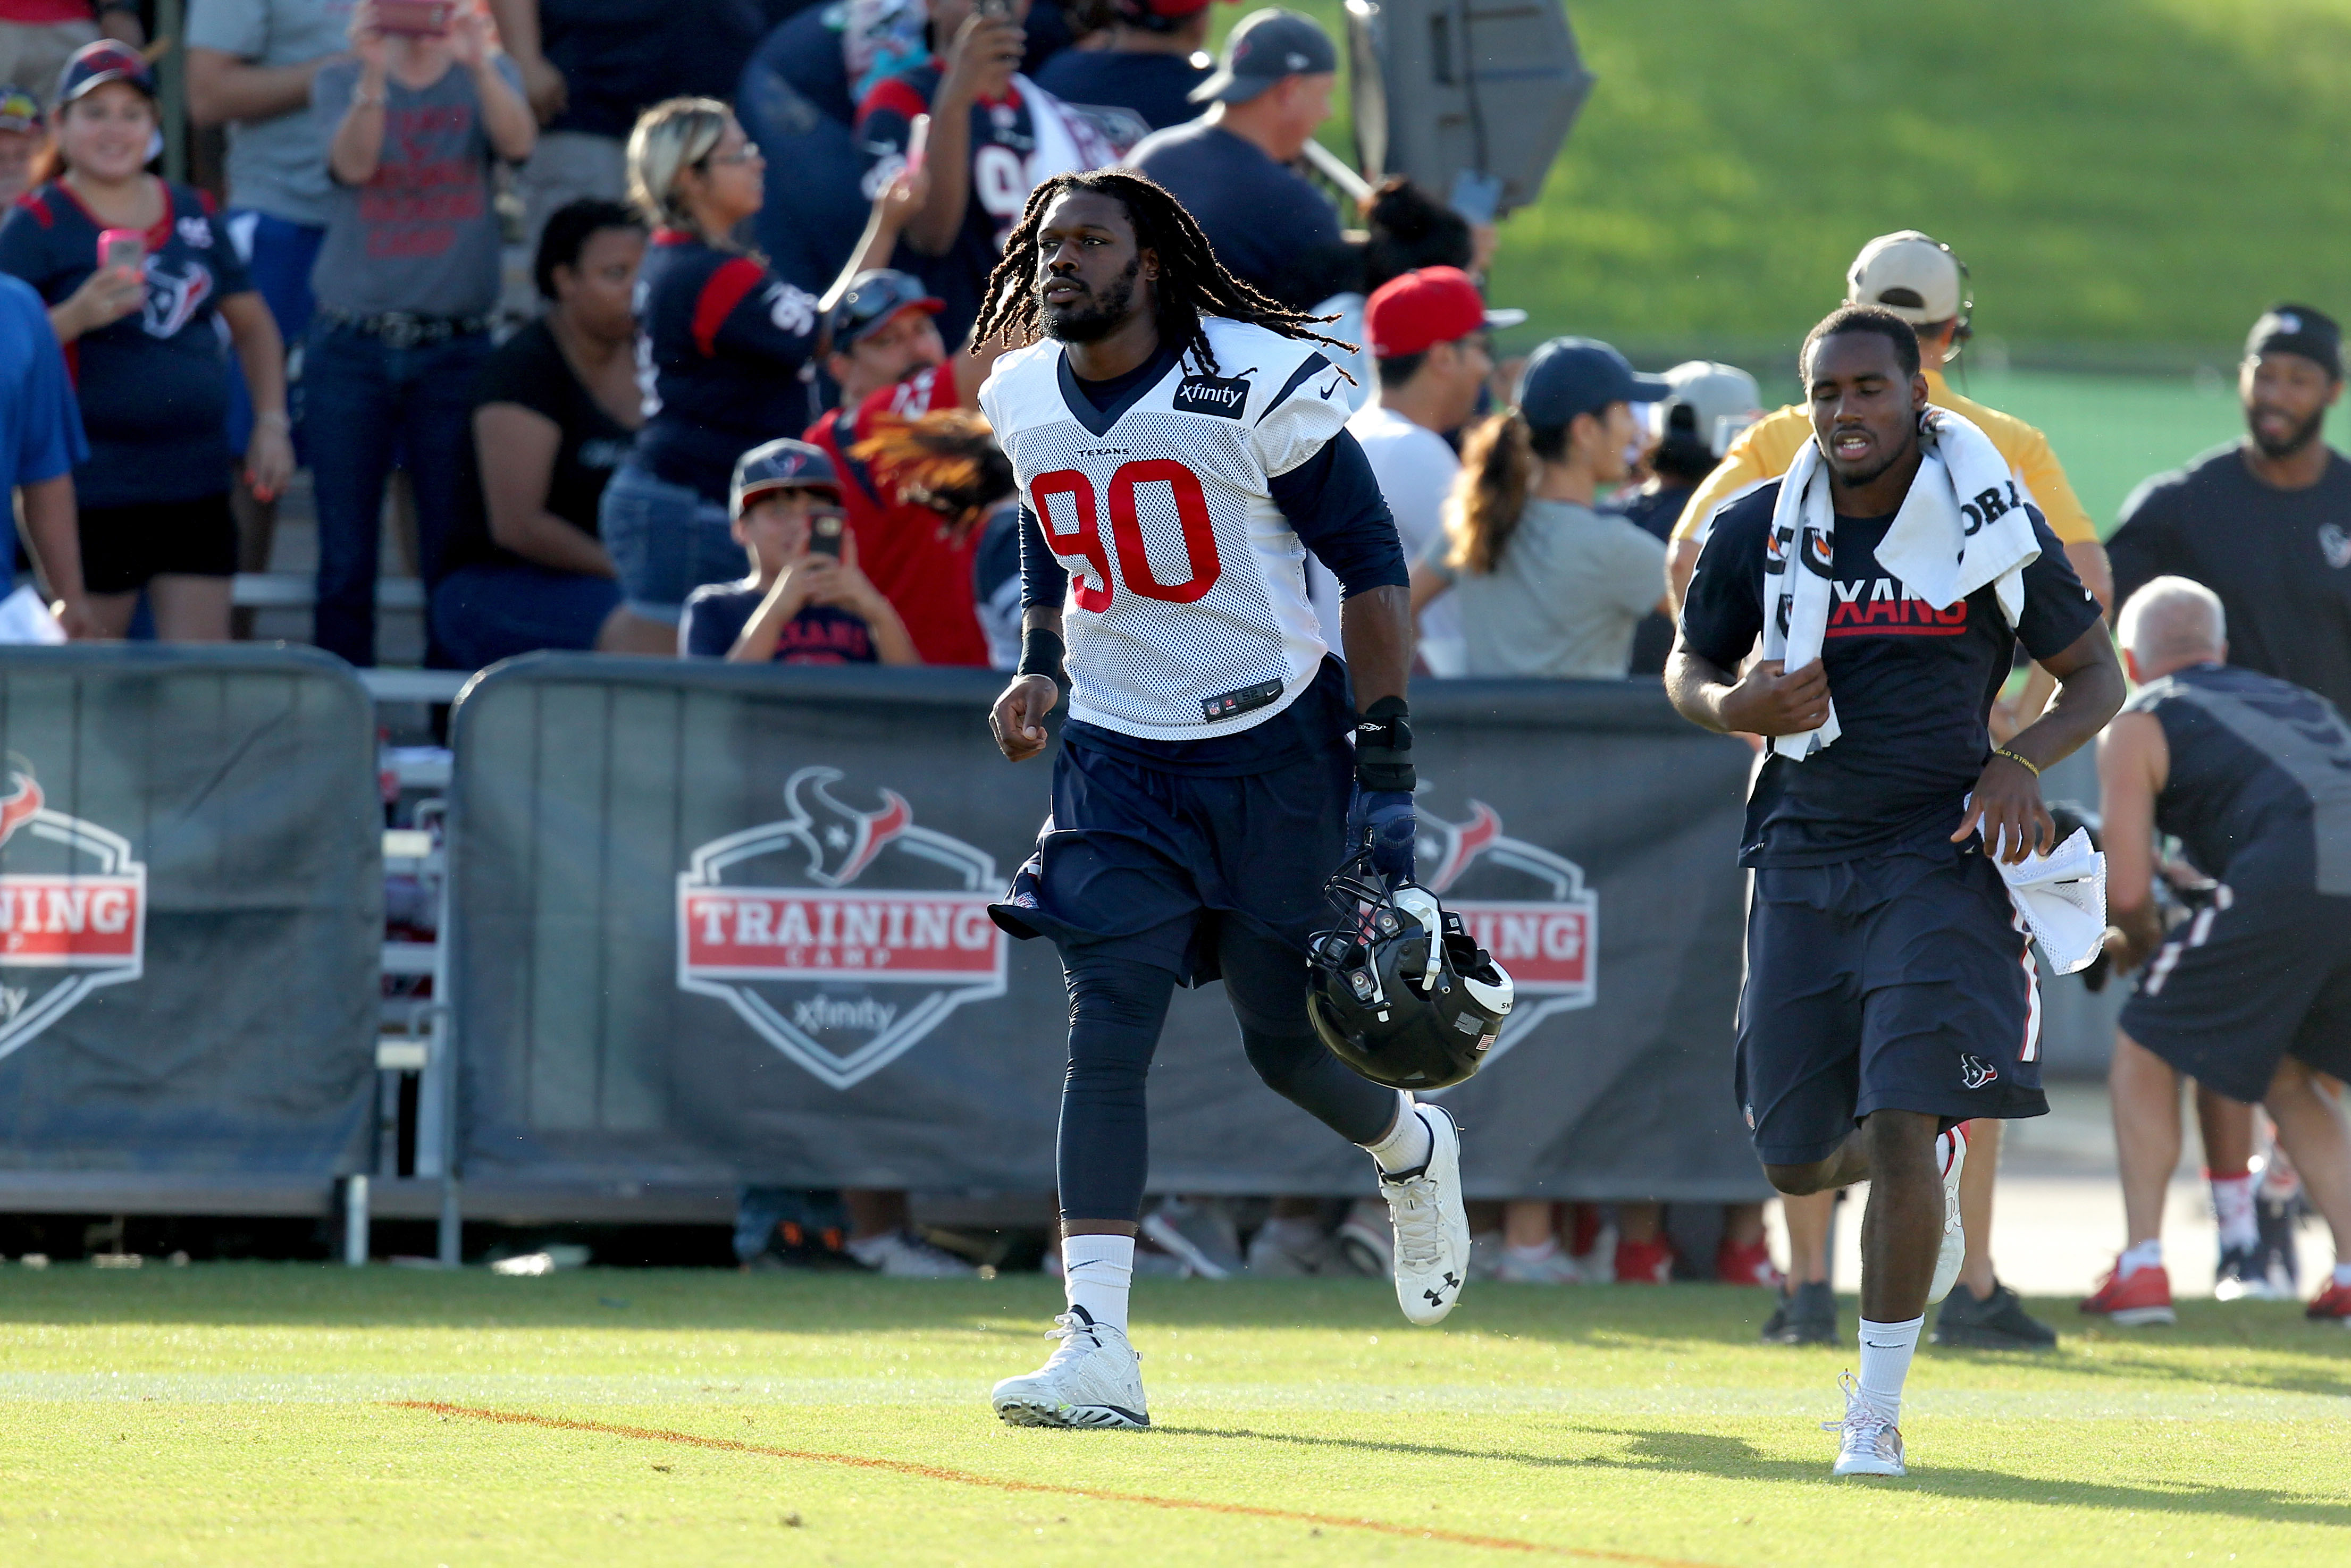 Clowney making one of his limited appearances at practice